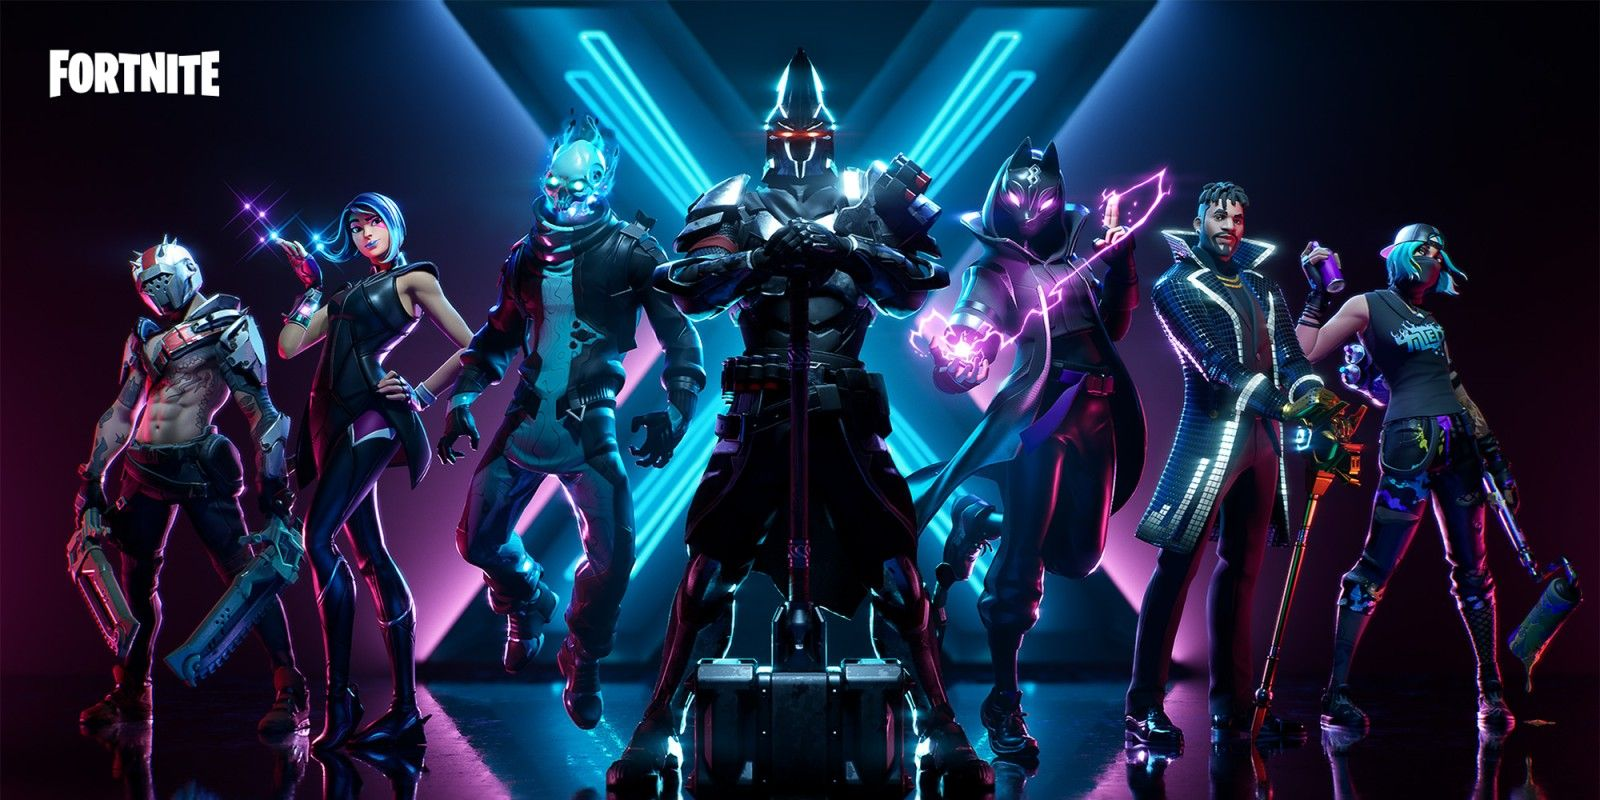 Pin By Augustin On Augustin Fortnite Epic Games Epic Games Fortnite